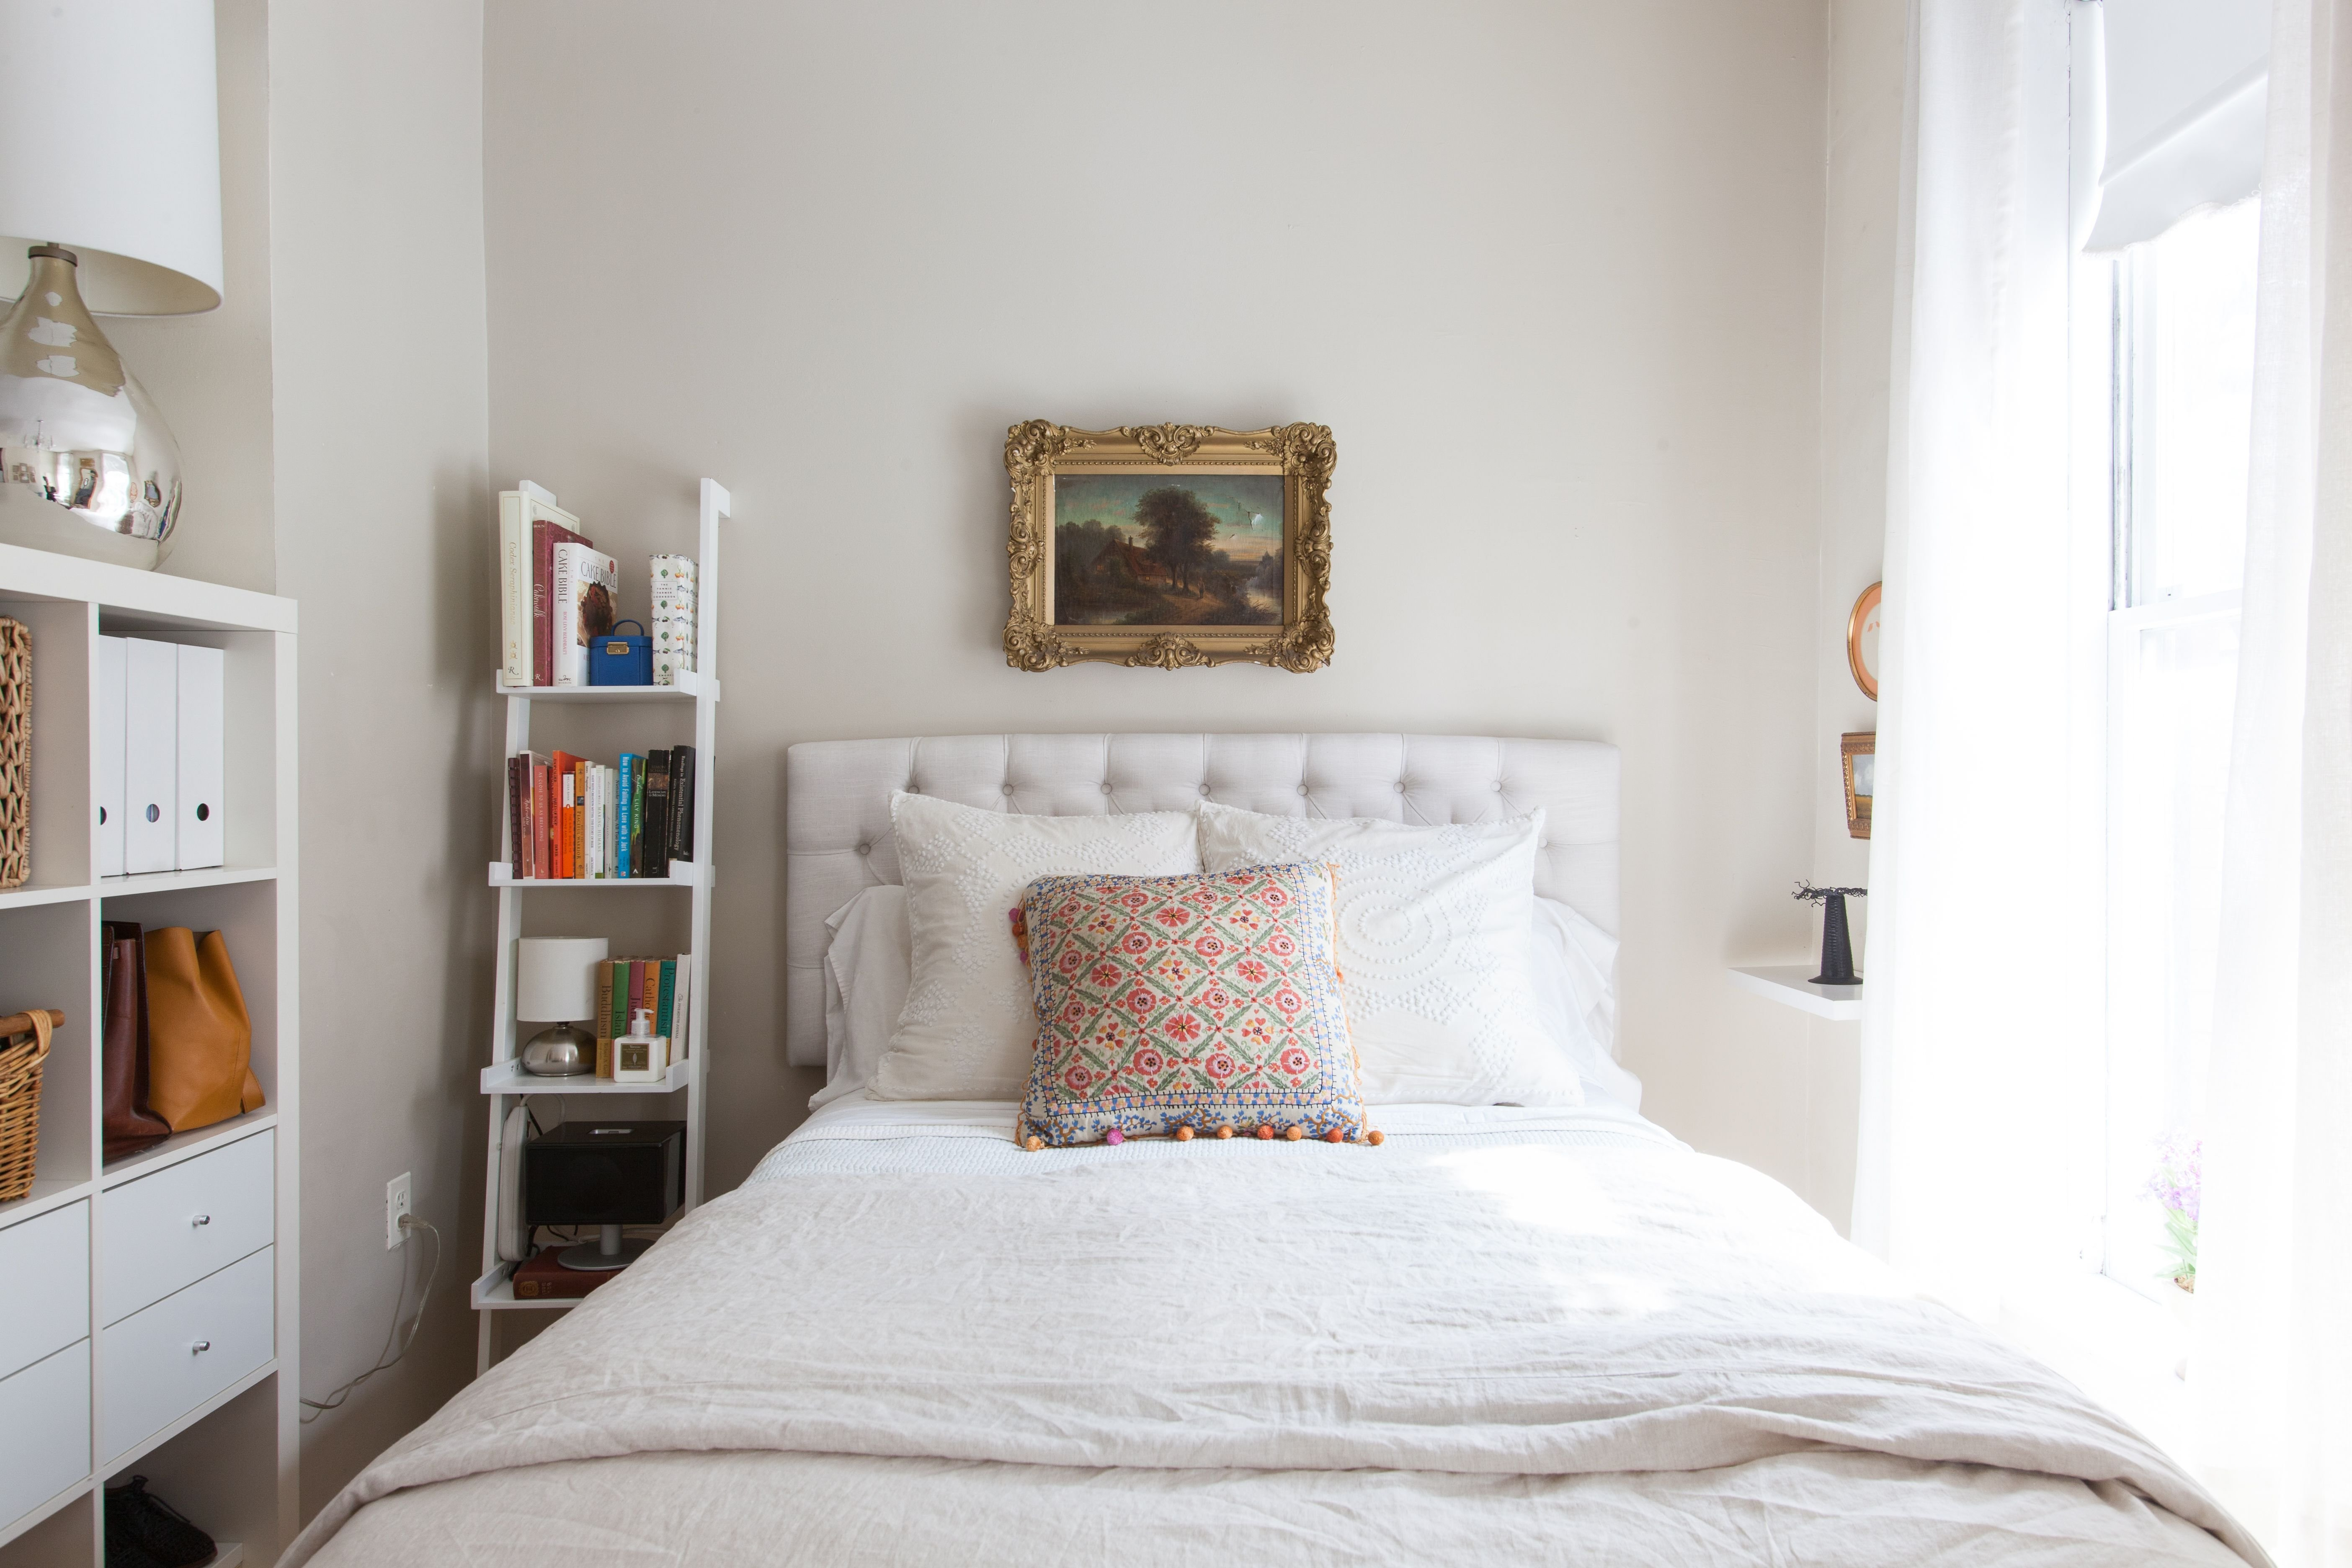 Best 46 Best Of Small Master Bedroom Ideas On A Budget Diy With Pictures